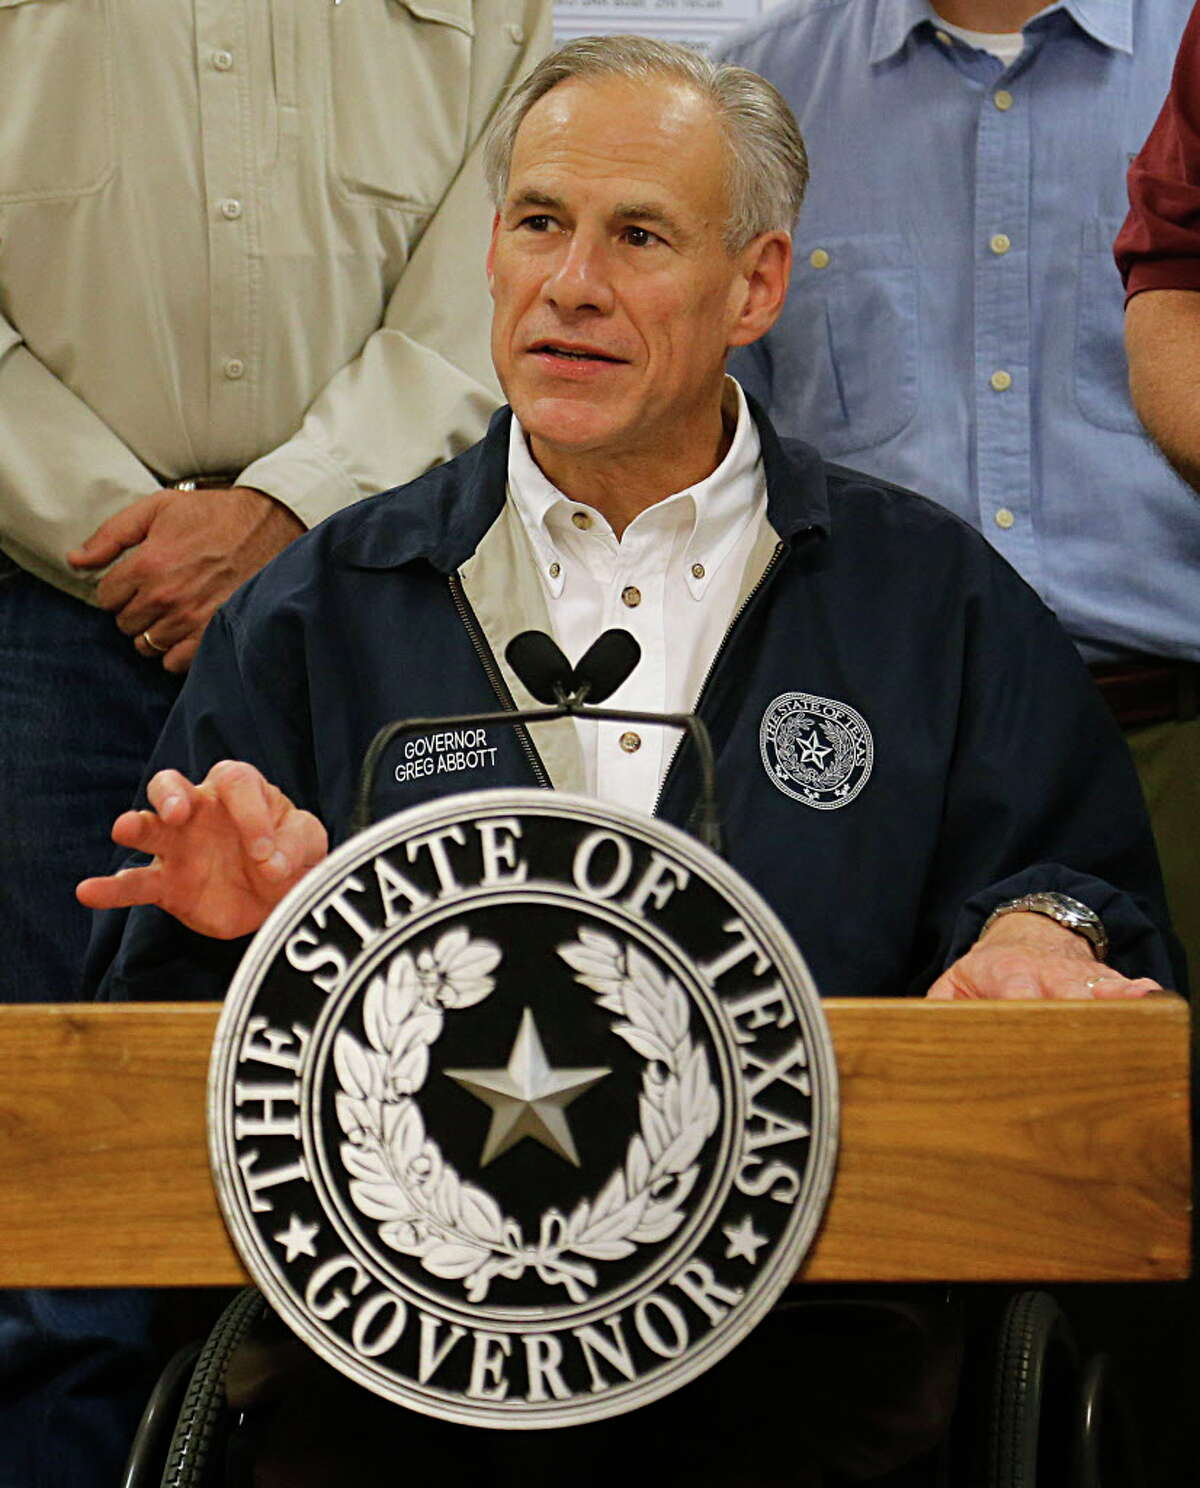 Texas Governor Greg Abbott speaks at a press conference at the Brazoria County Court at Law after taking an aerial tour of Brazoria and Fort Bend Counties Friday, June 3, 2016, in Angleton.